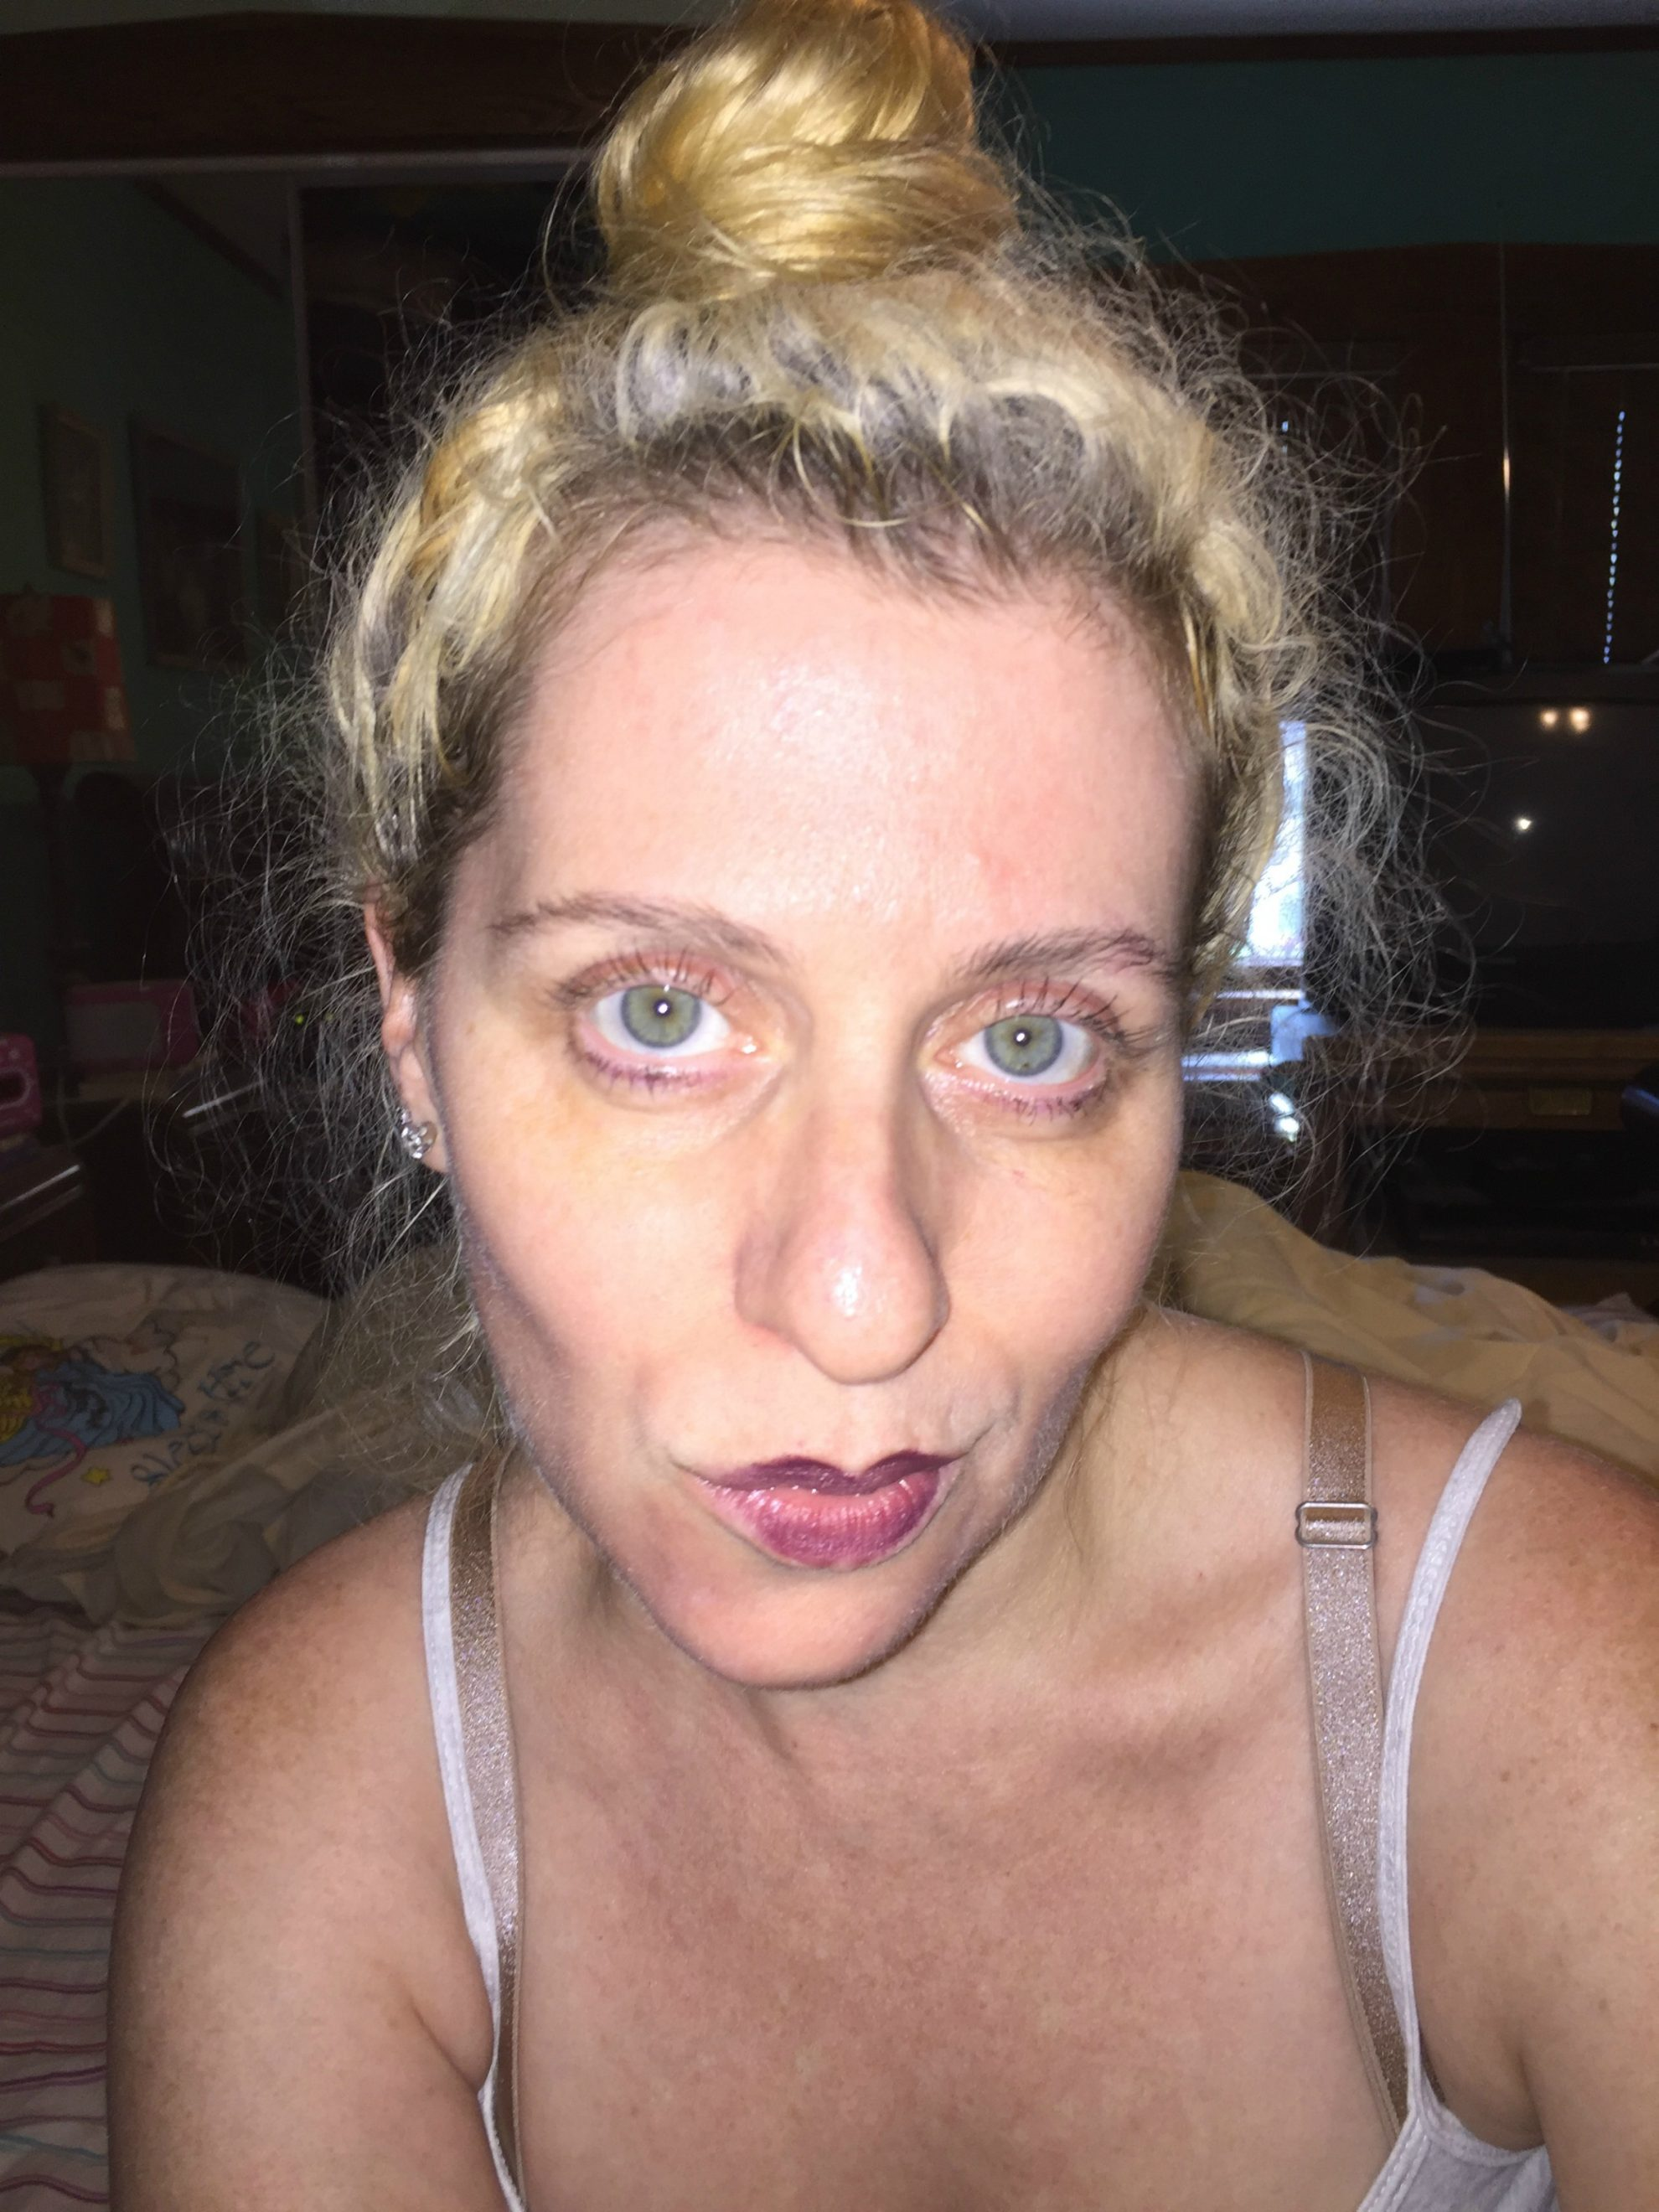 This is Day 2 after I applied Neutrogena Ultra Sheer Liquid Daily Sunscreen Broad Spectrum SPF 70